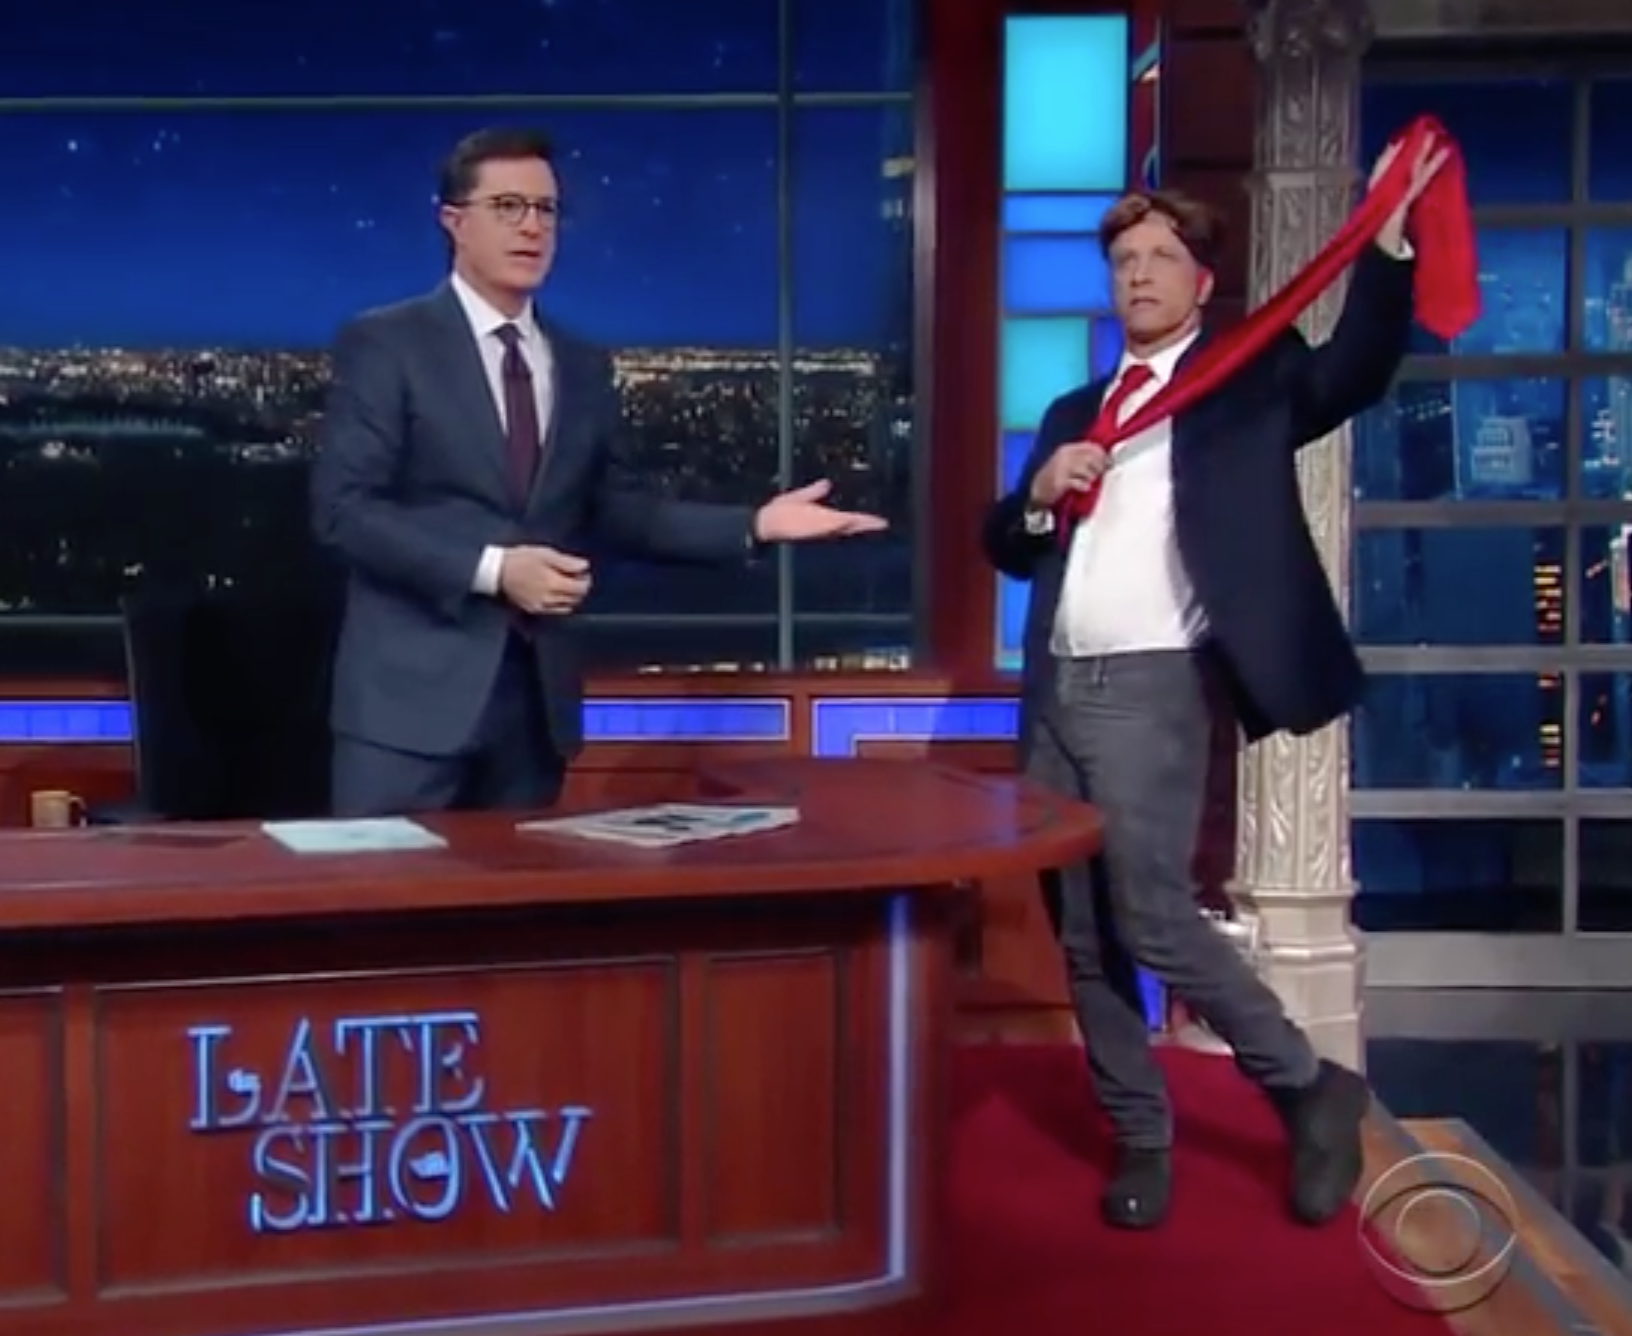 WATCH: Jon Stewart Stops In On Stephen Colbert And It's Hilarious!